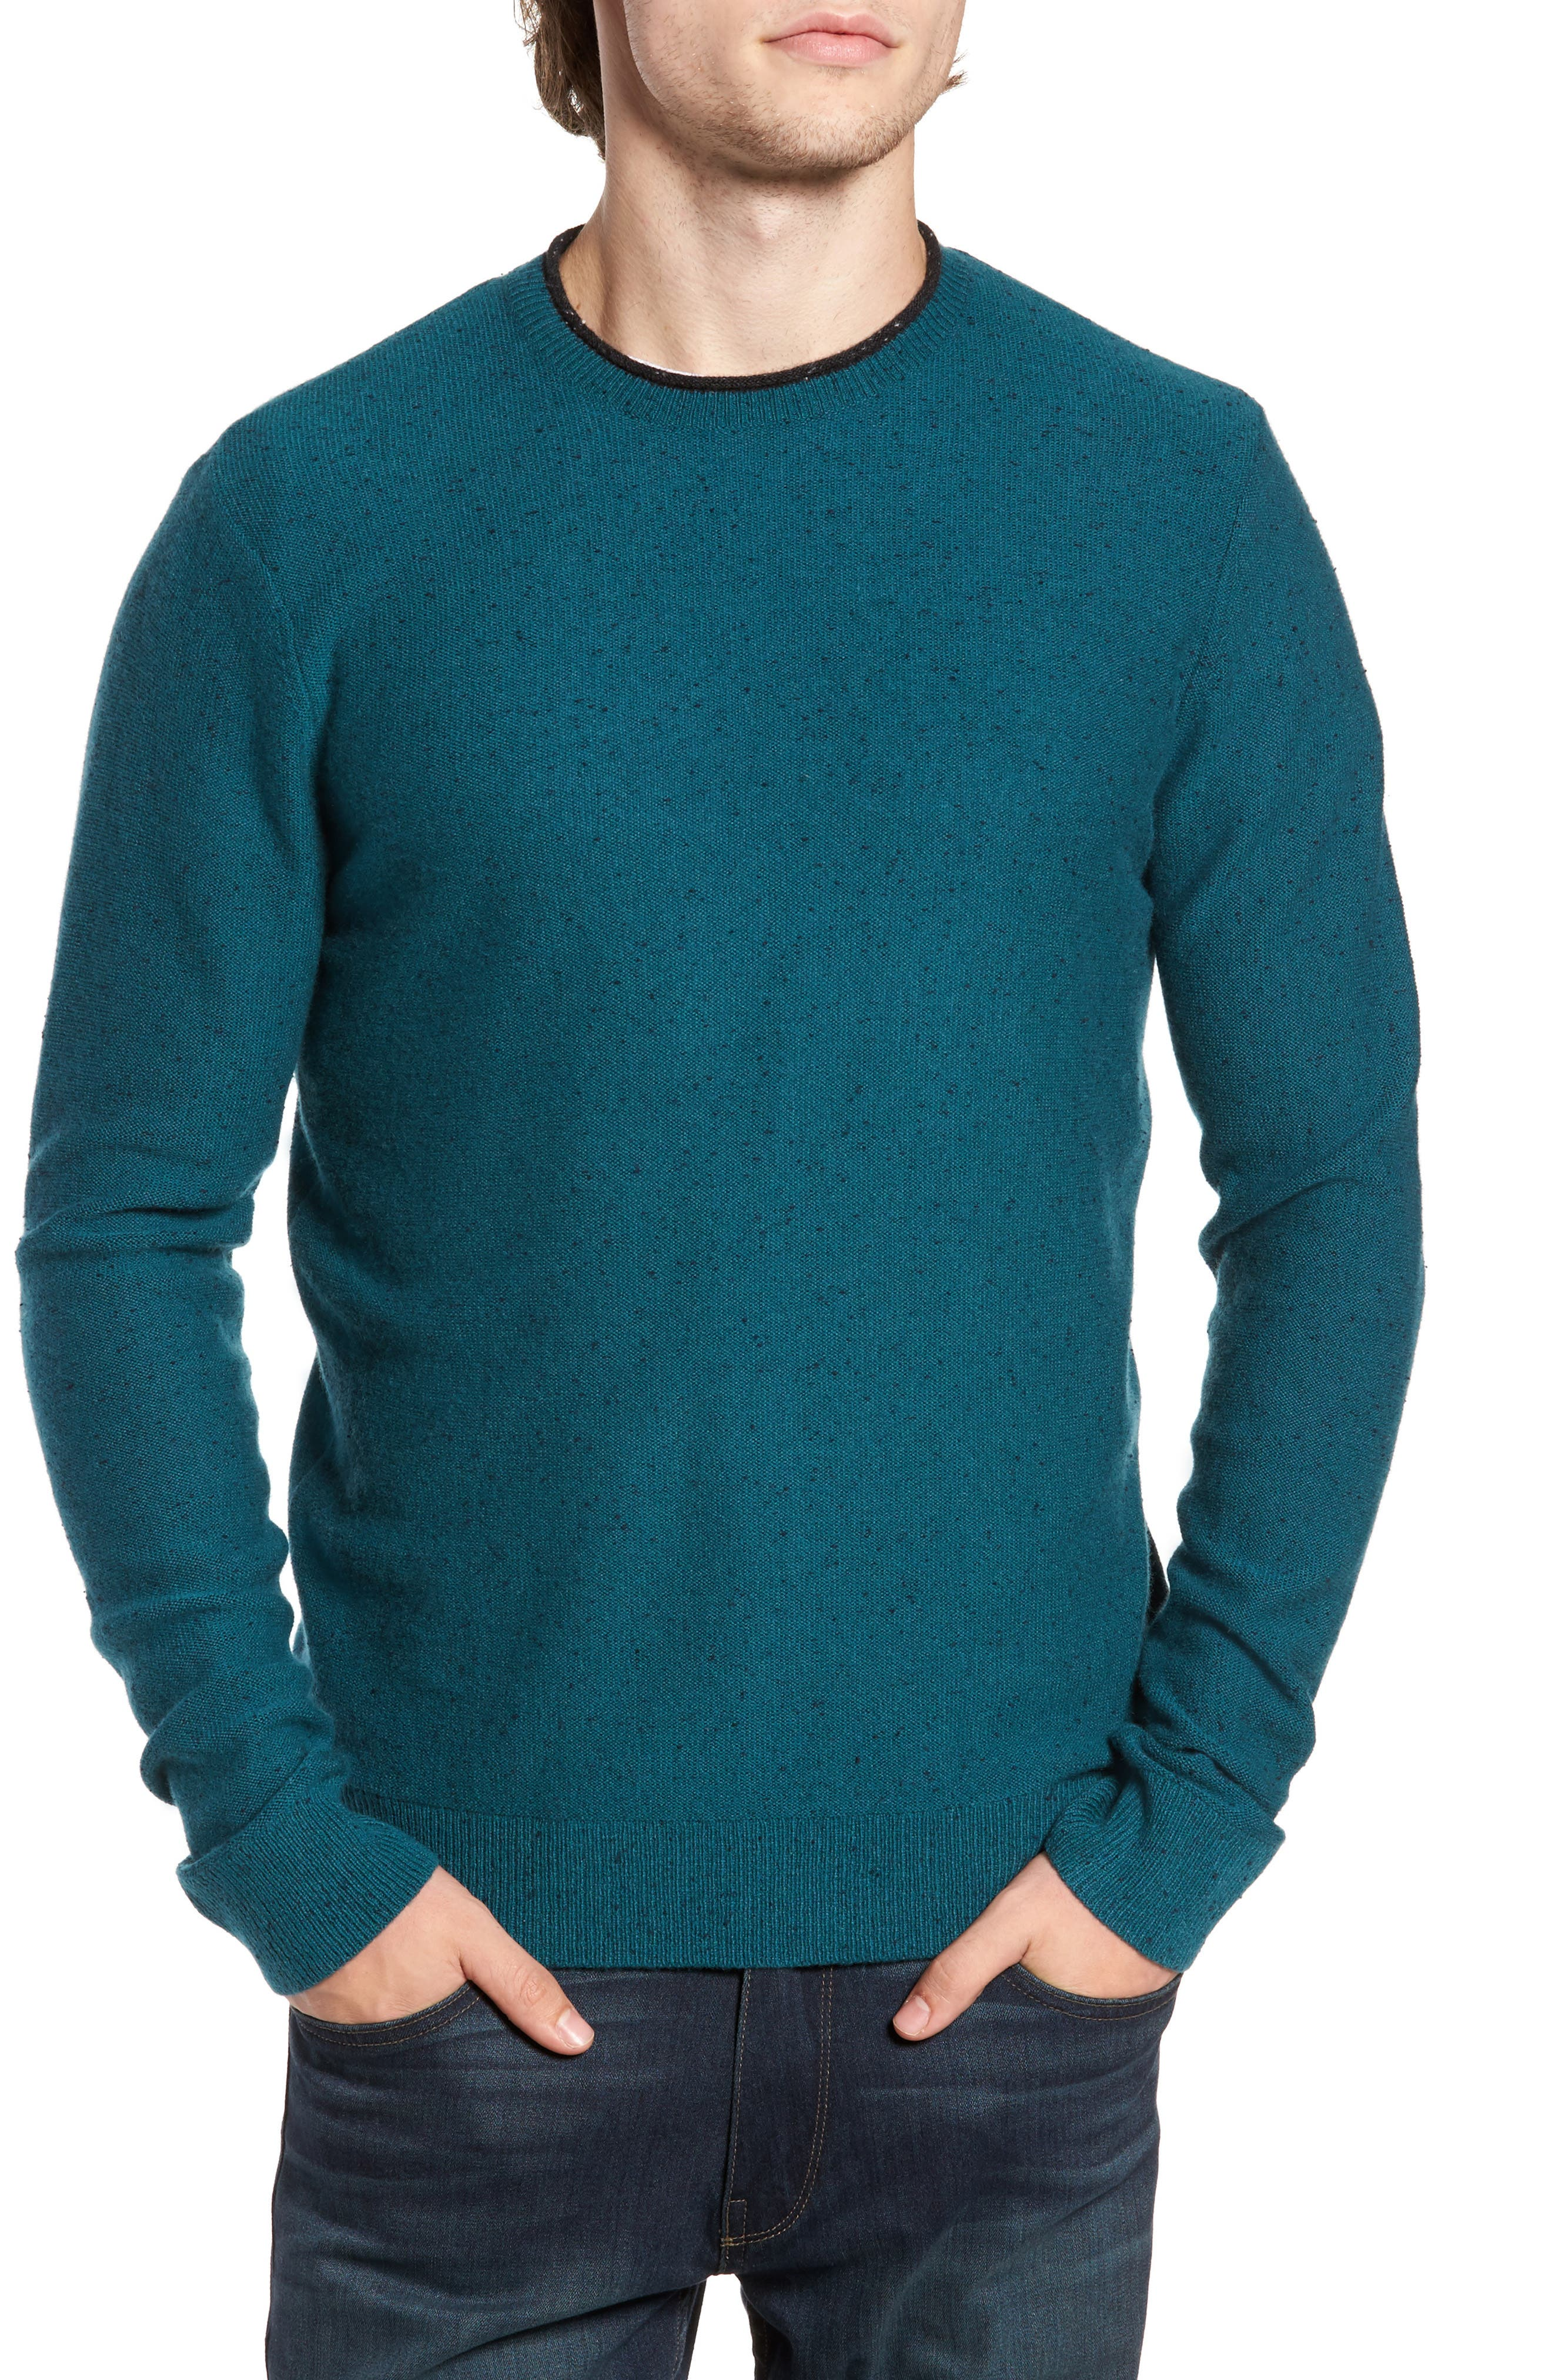 1901 Nep Wool & Cashmere Sweater